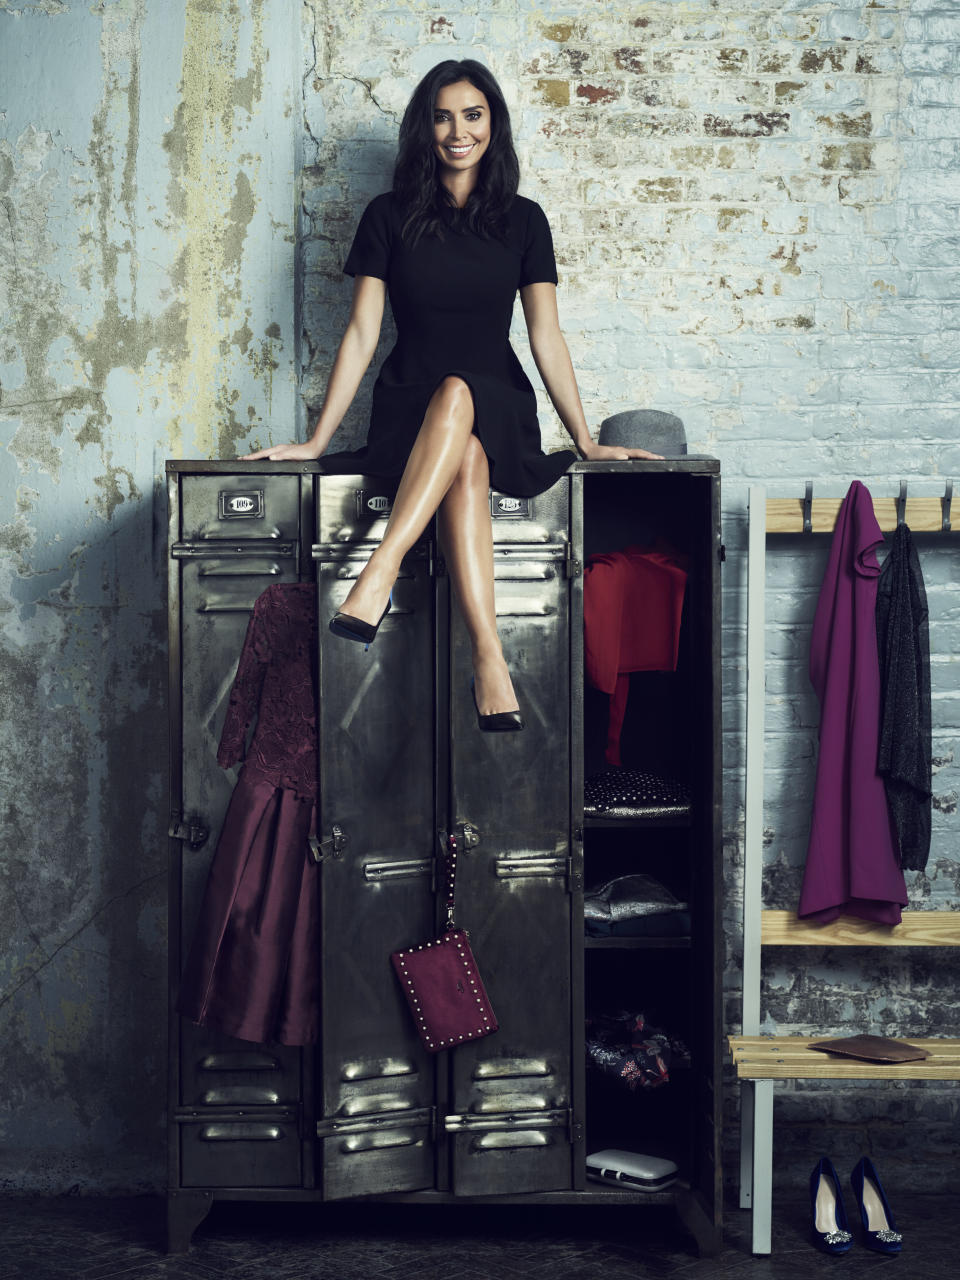 Christine Lampard poses for the Give Up Clothes for Good campaign. (Photo: Jason Bell)